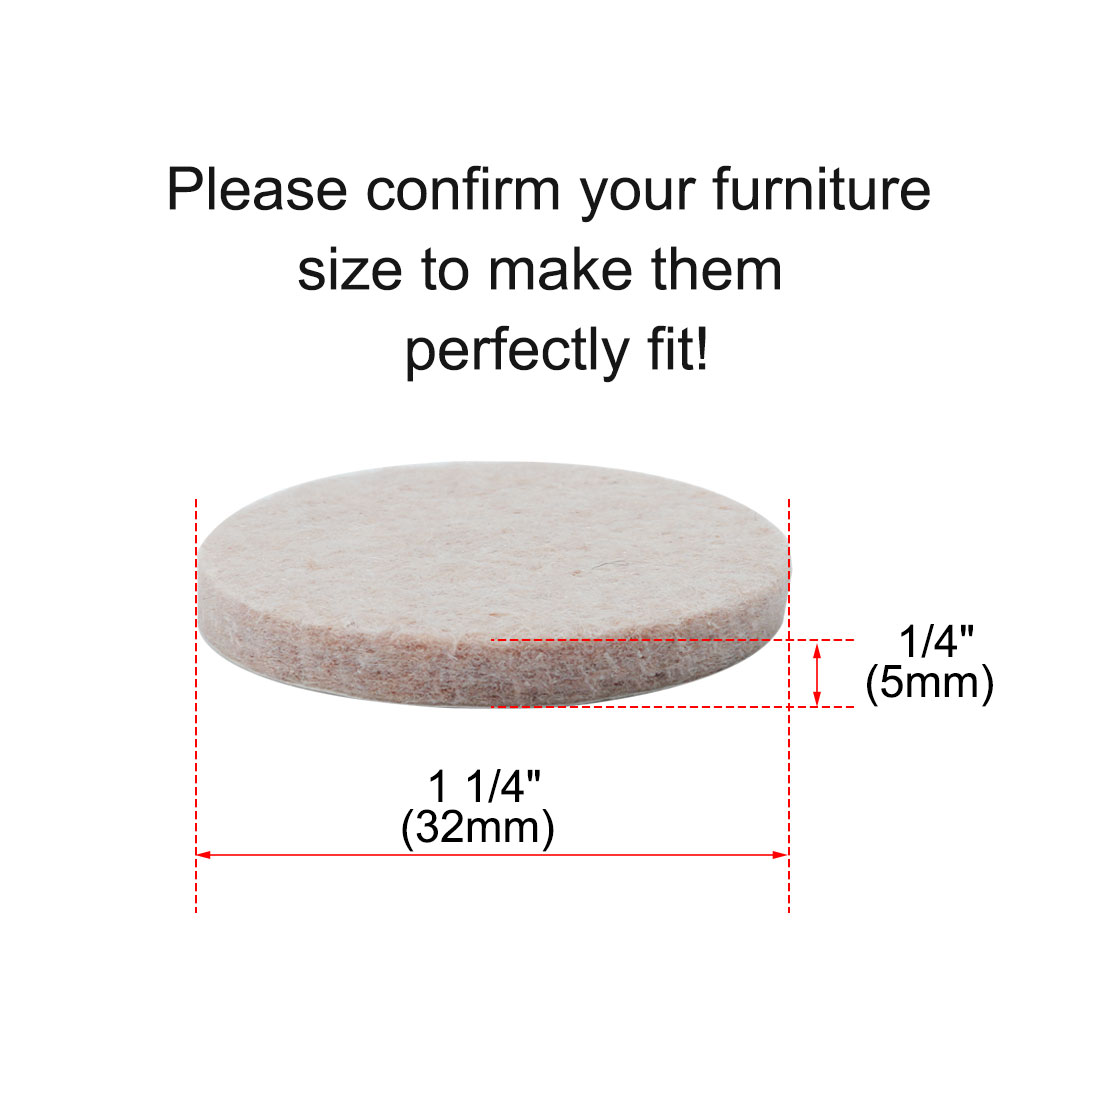 """Furniture Pads Round 1 1/4"""" Self-stick for Furniture Floor Chair Protector 30pcs - image 1 of 7"""